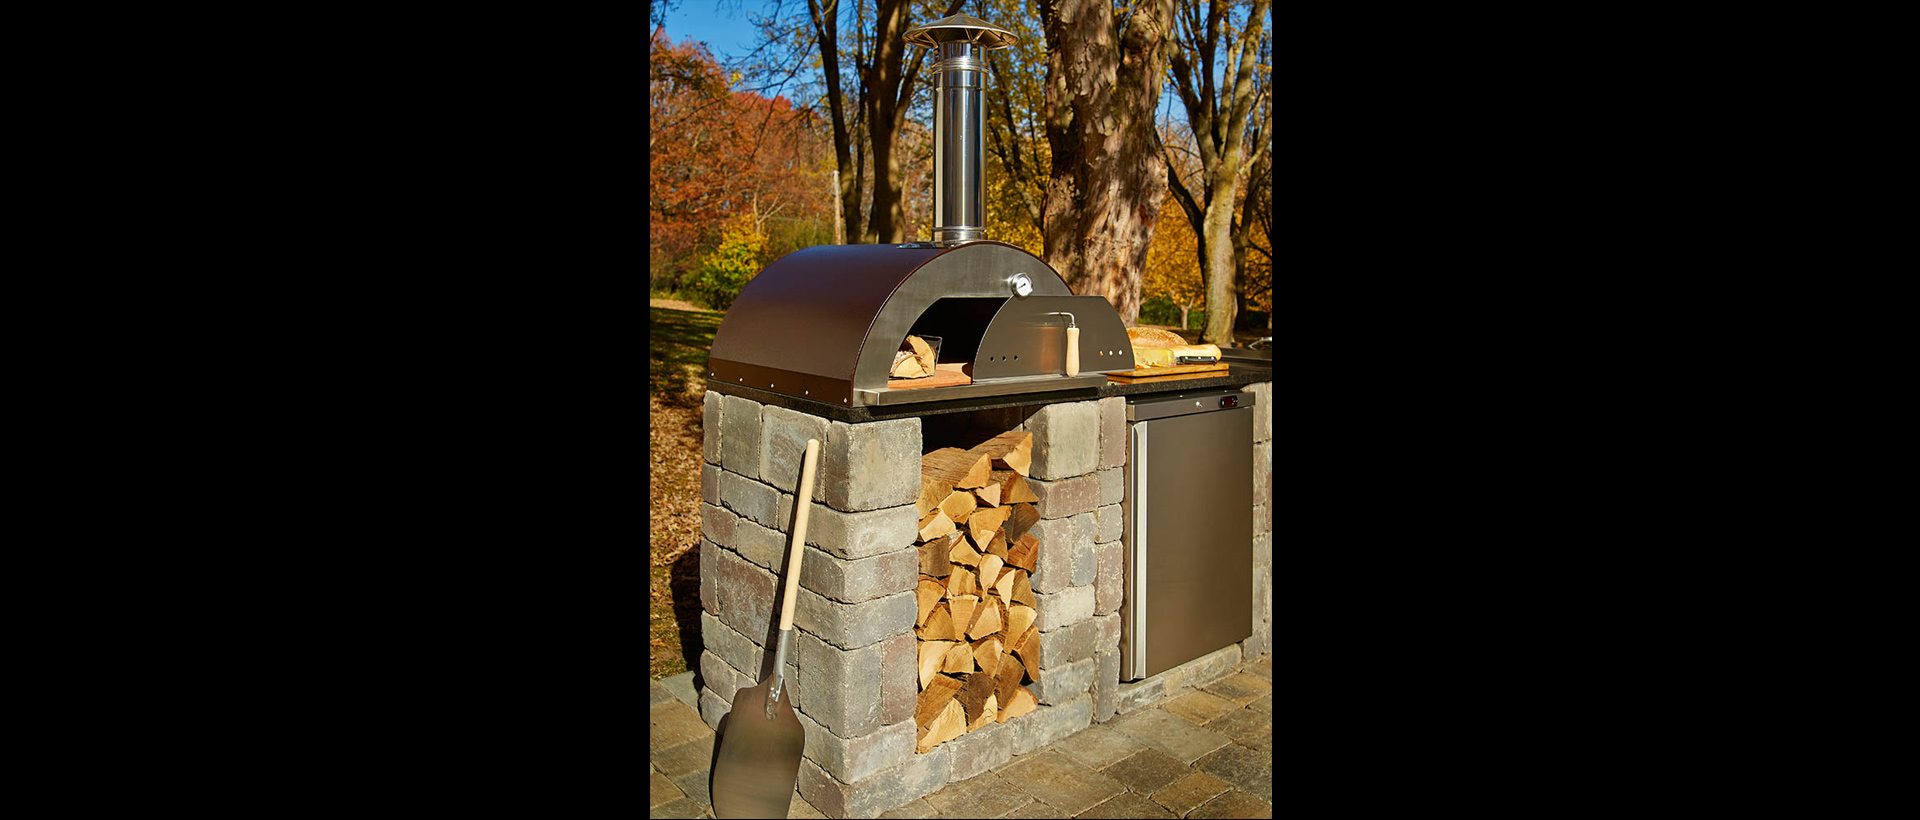 Pizzastand Oven Outdoor Oven Cabinet Necessories Kits For Outdoor Living